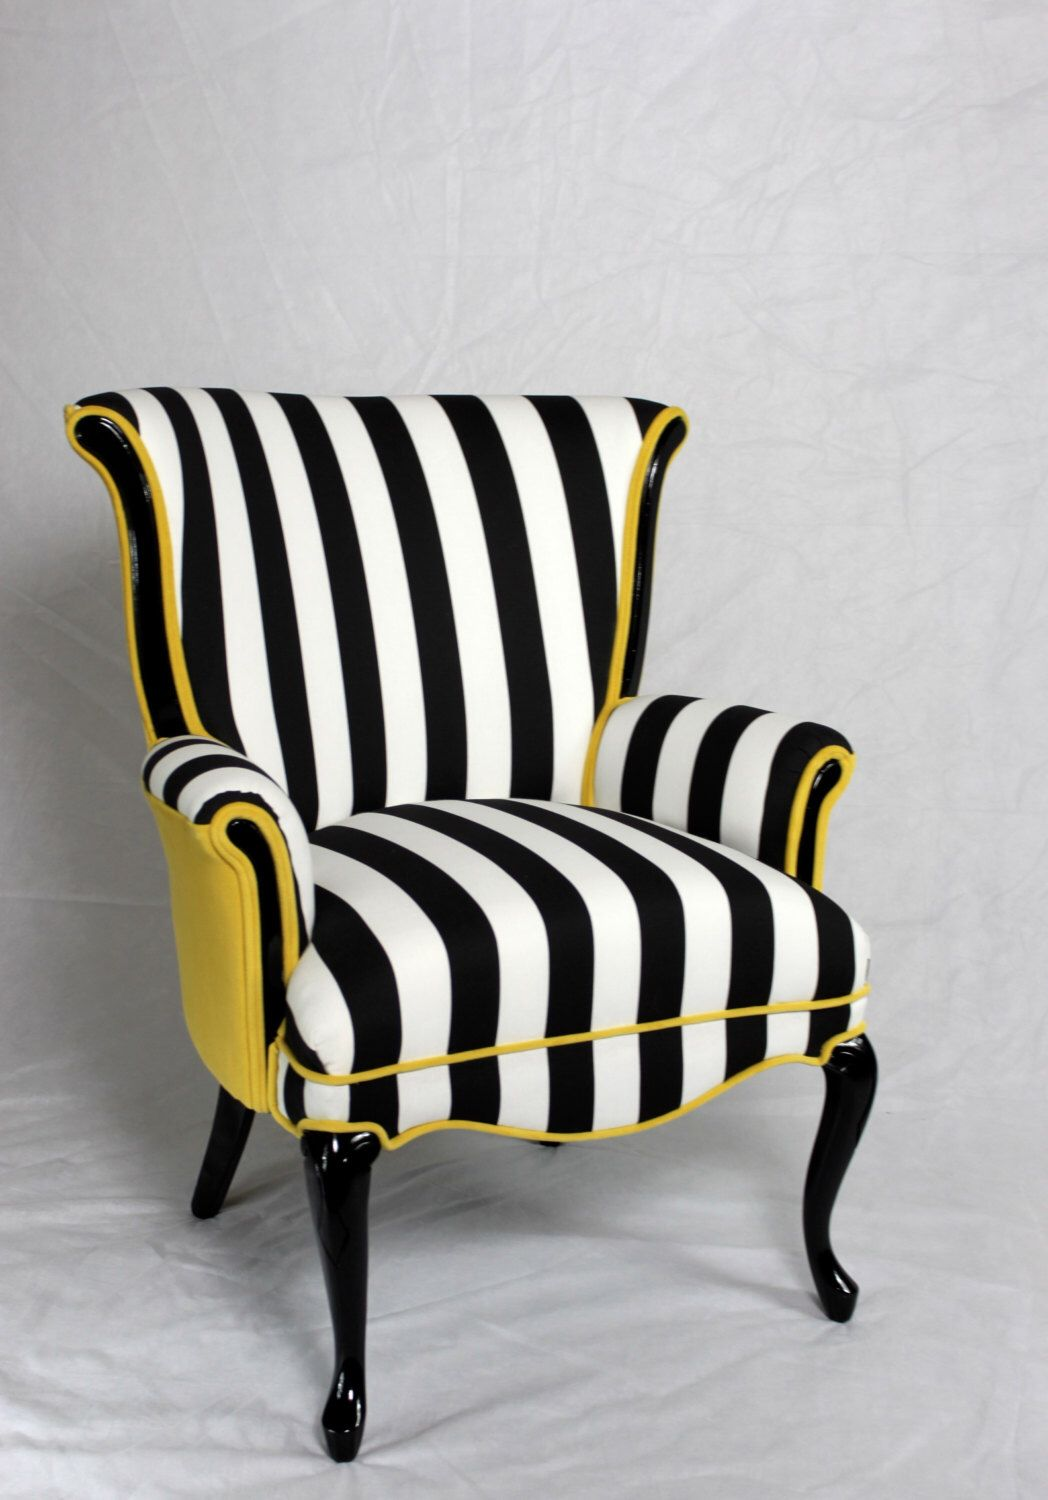 Black And White Striped Chairs Leather Dining Room Chair Sold Can Replicate Made In The Usa